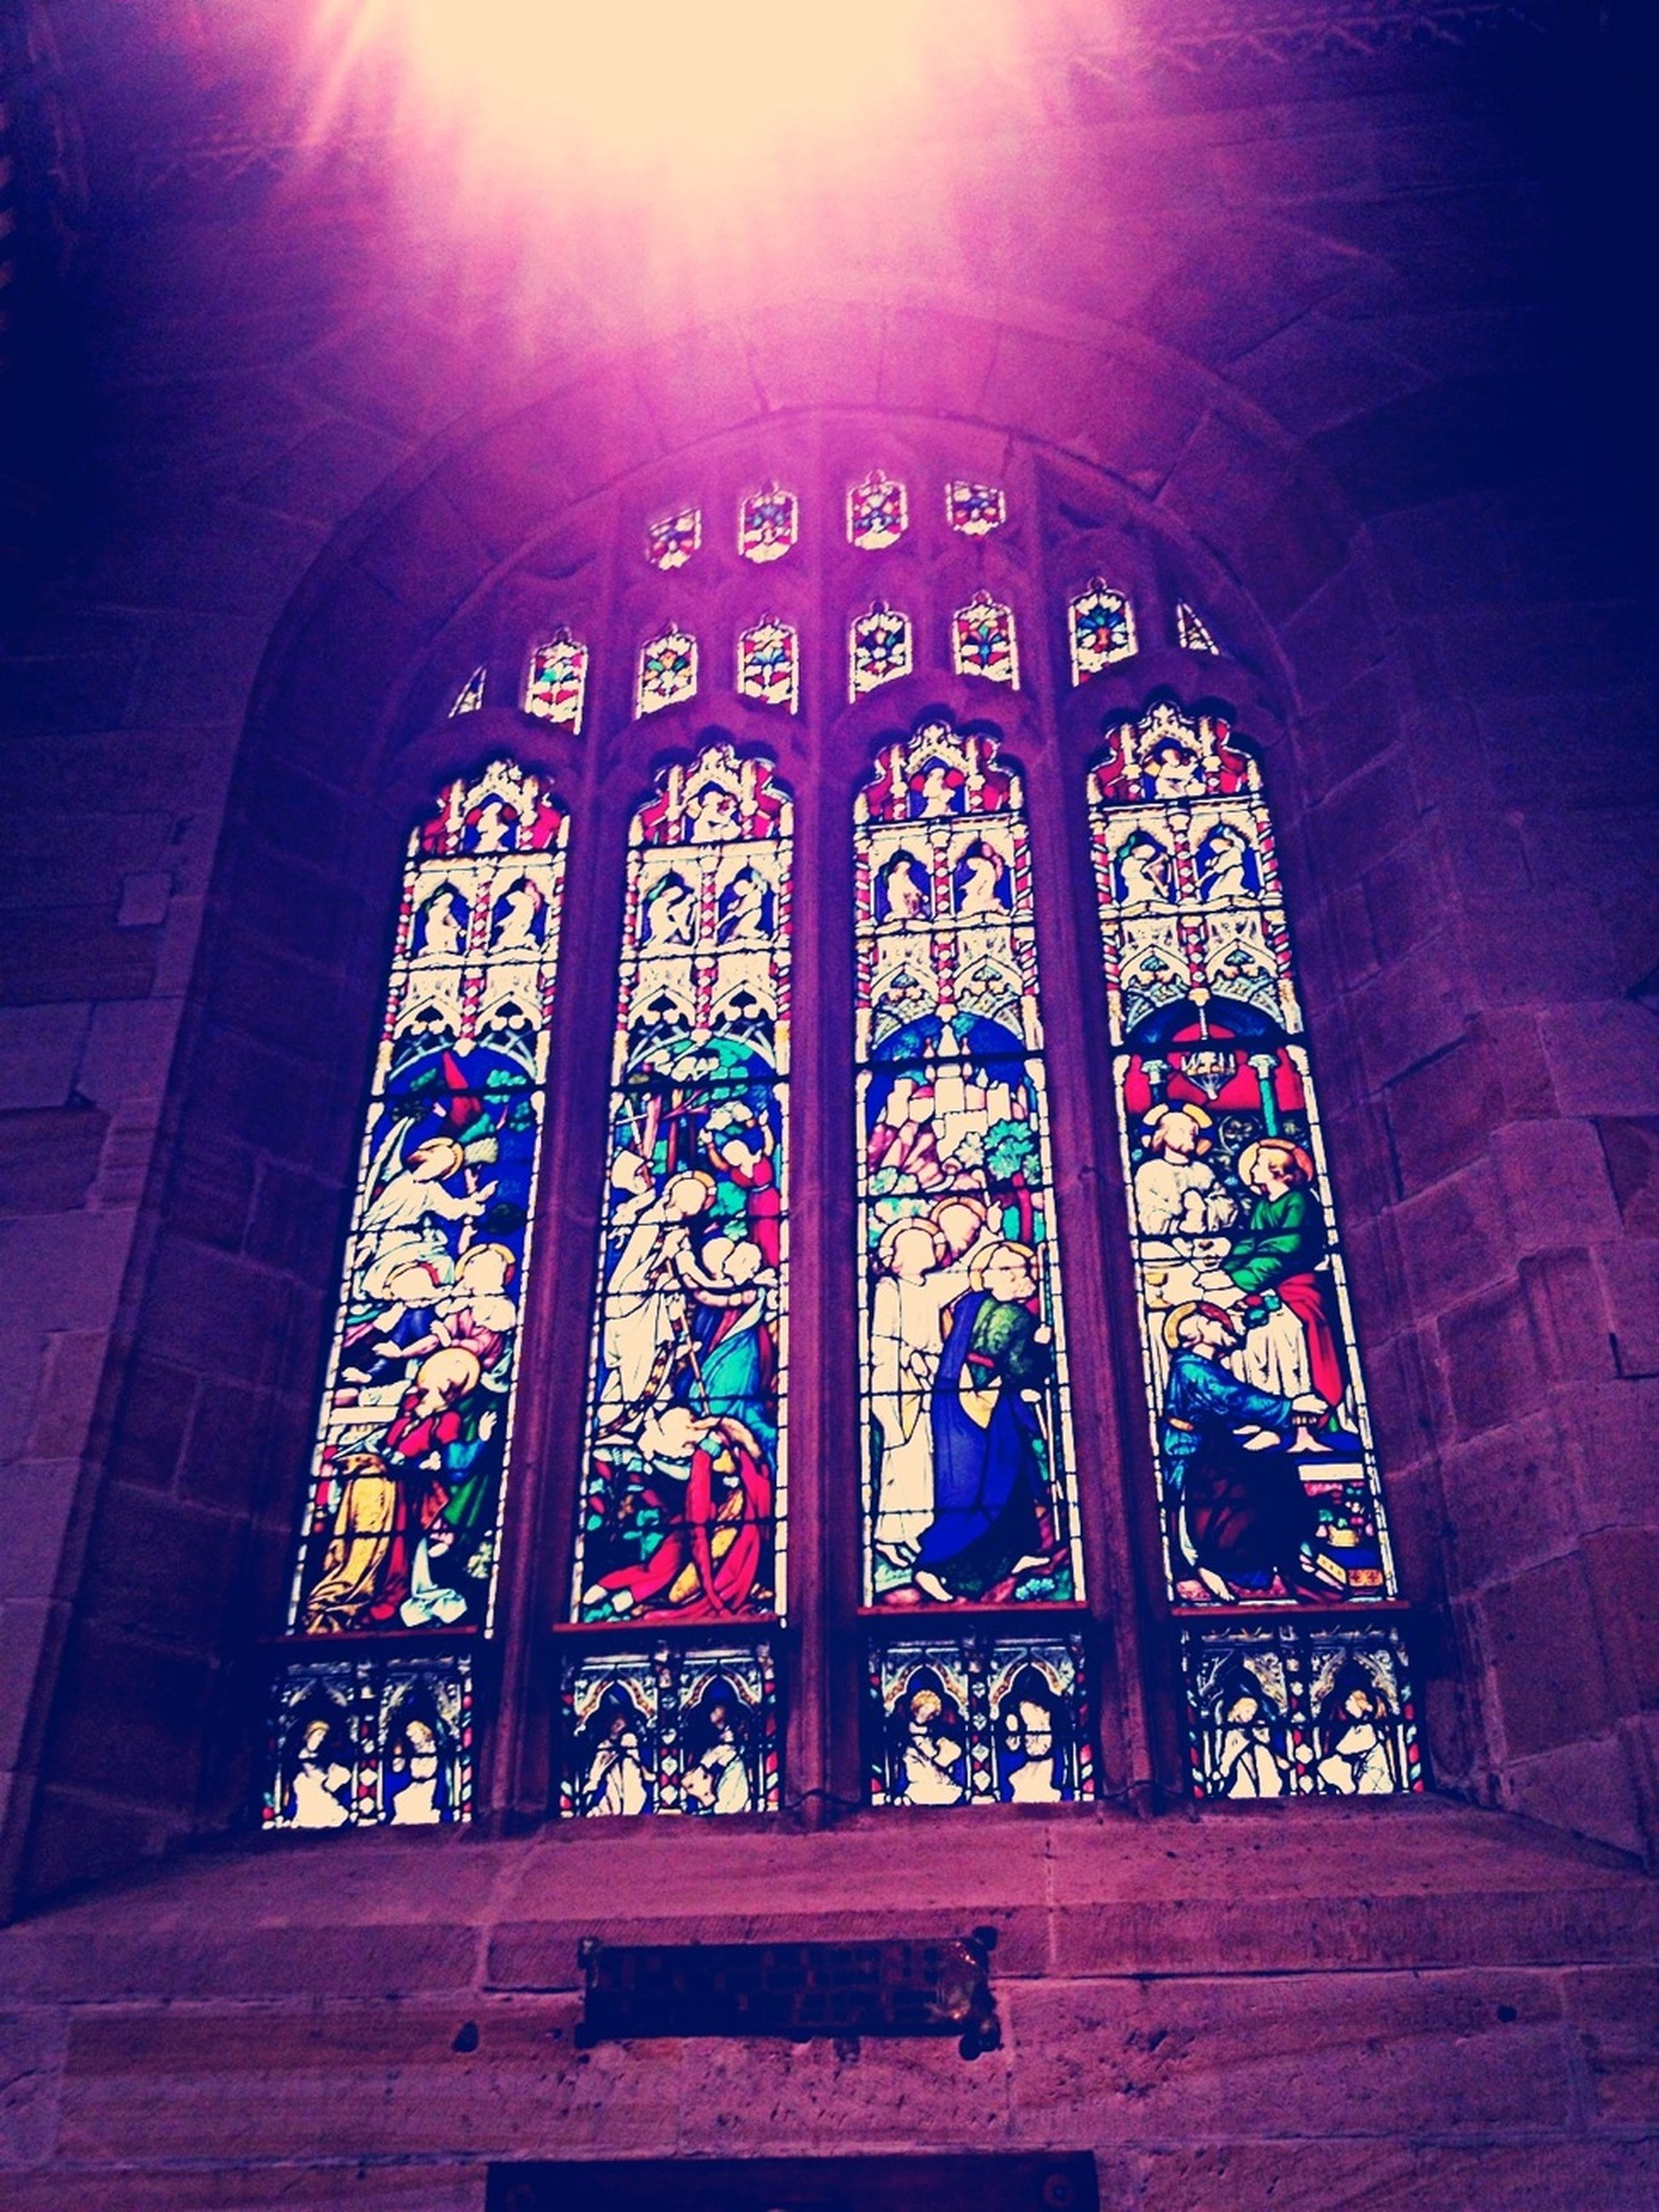 indoors, architecture, built structure, arch, stained glass, window, church, place of worship, religion, pattern, design, low angle view, spirituality, door, entrance, interior, sunlight, no people, ceiling